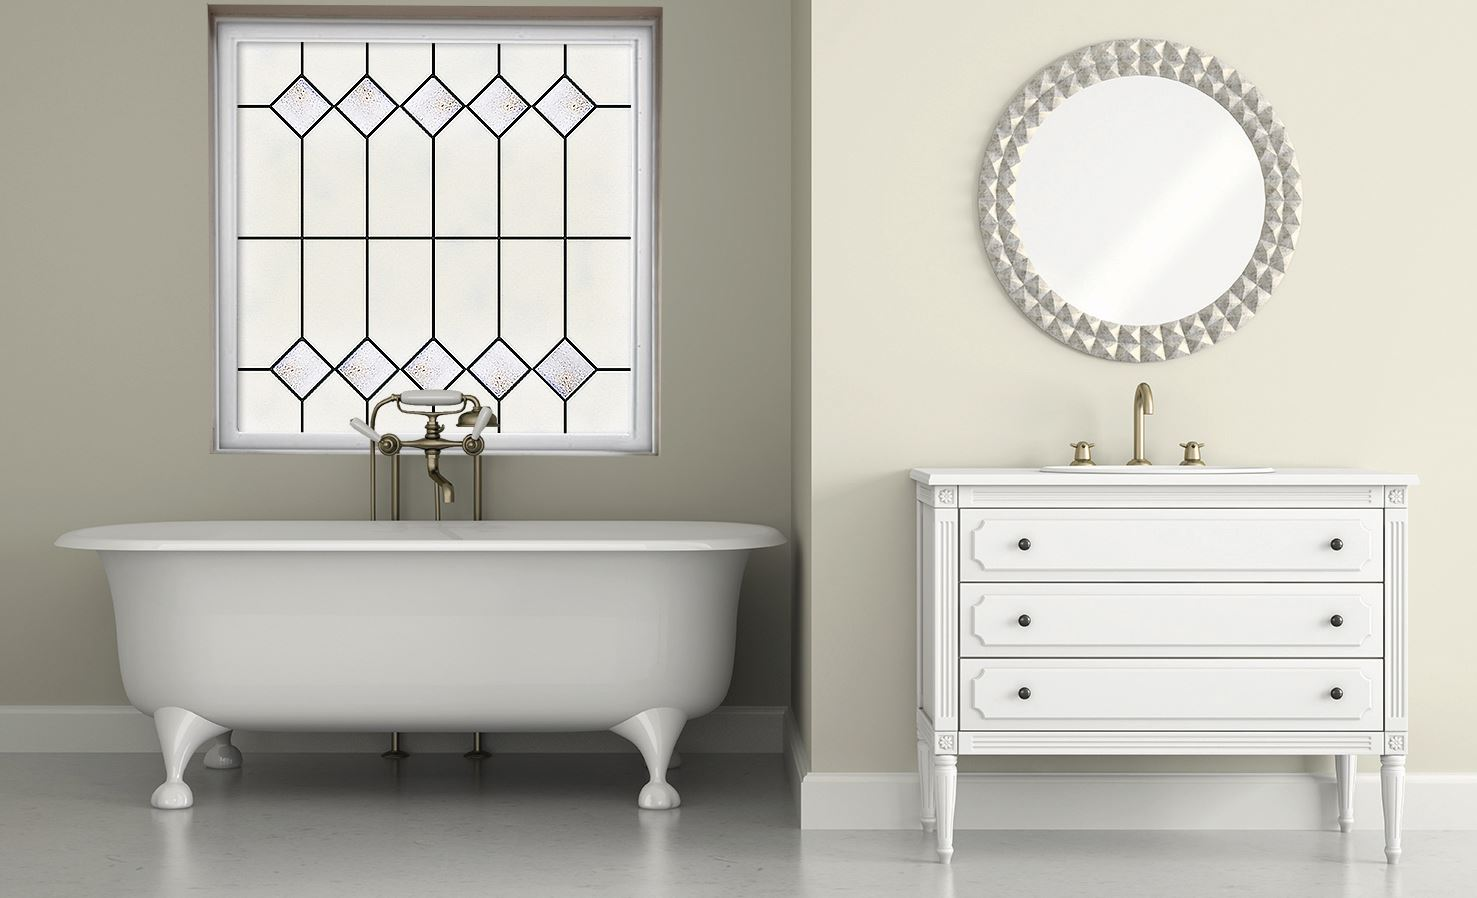 HyLite Introduces Home Designer Collection Of Eclectic Privacy - Home designers collection